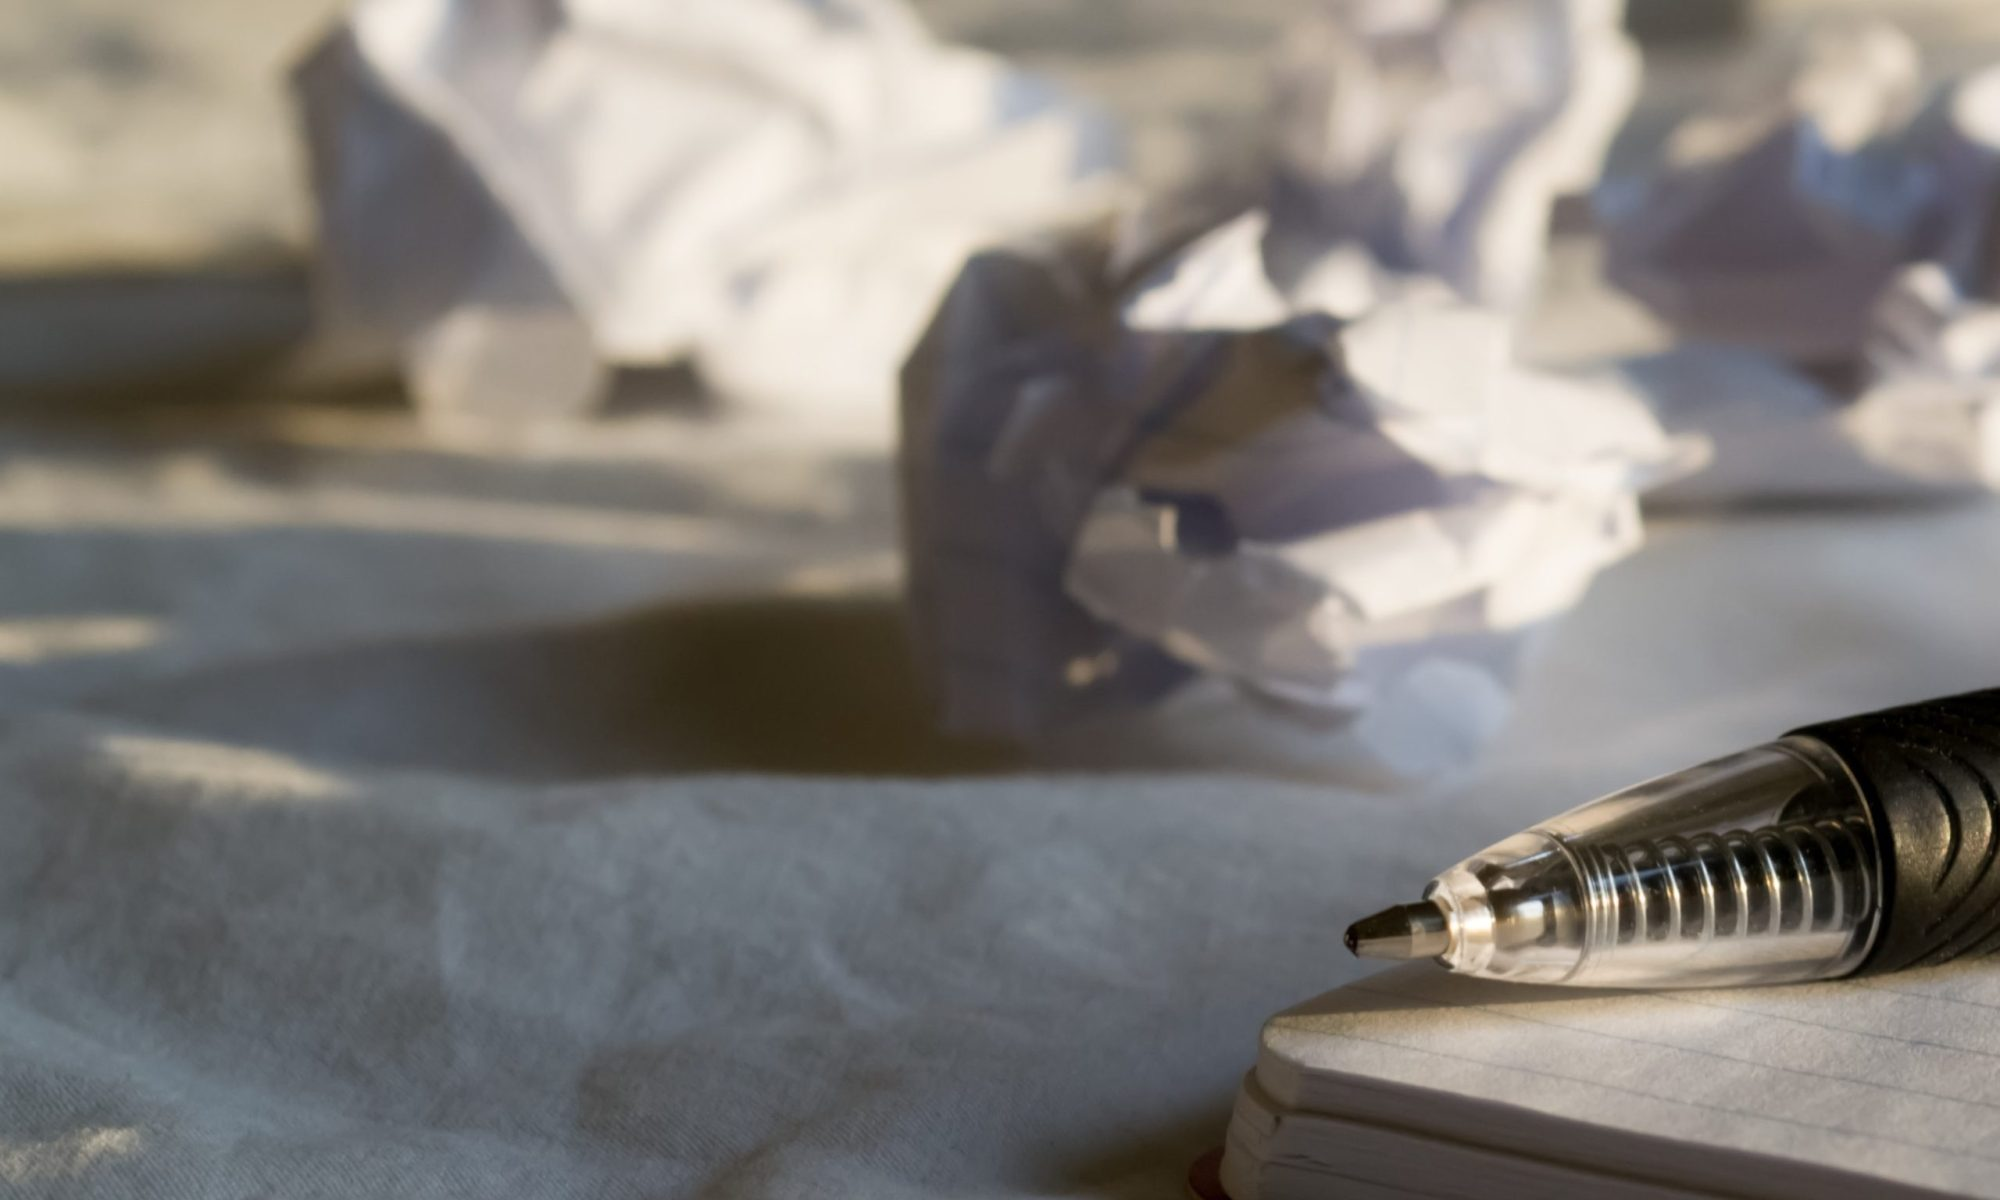 crumpled paper trying to overcome writer's block